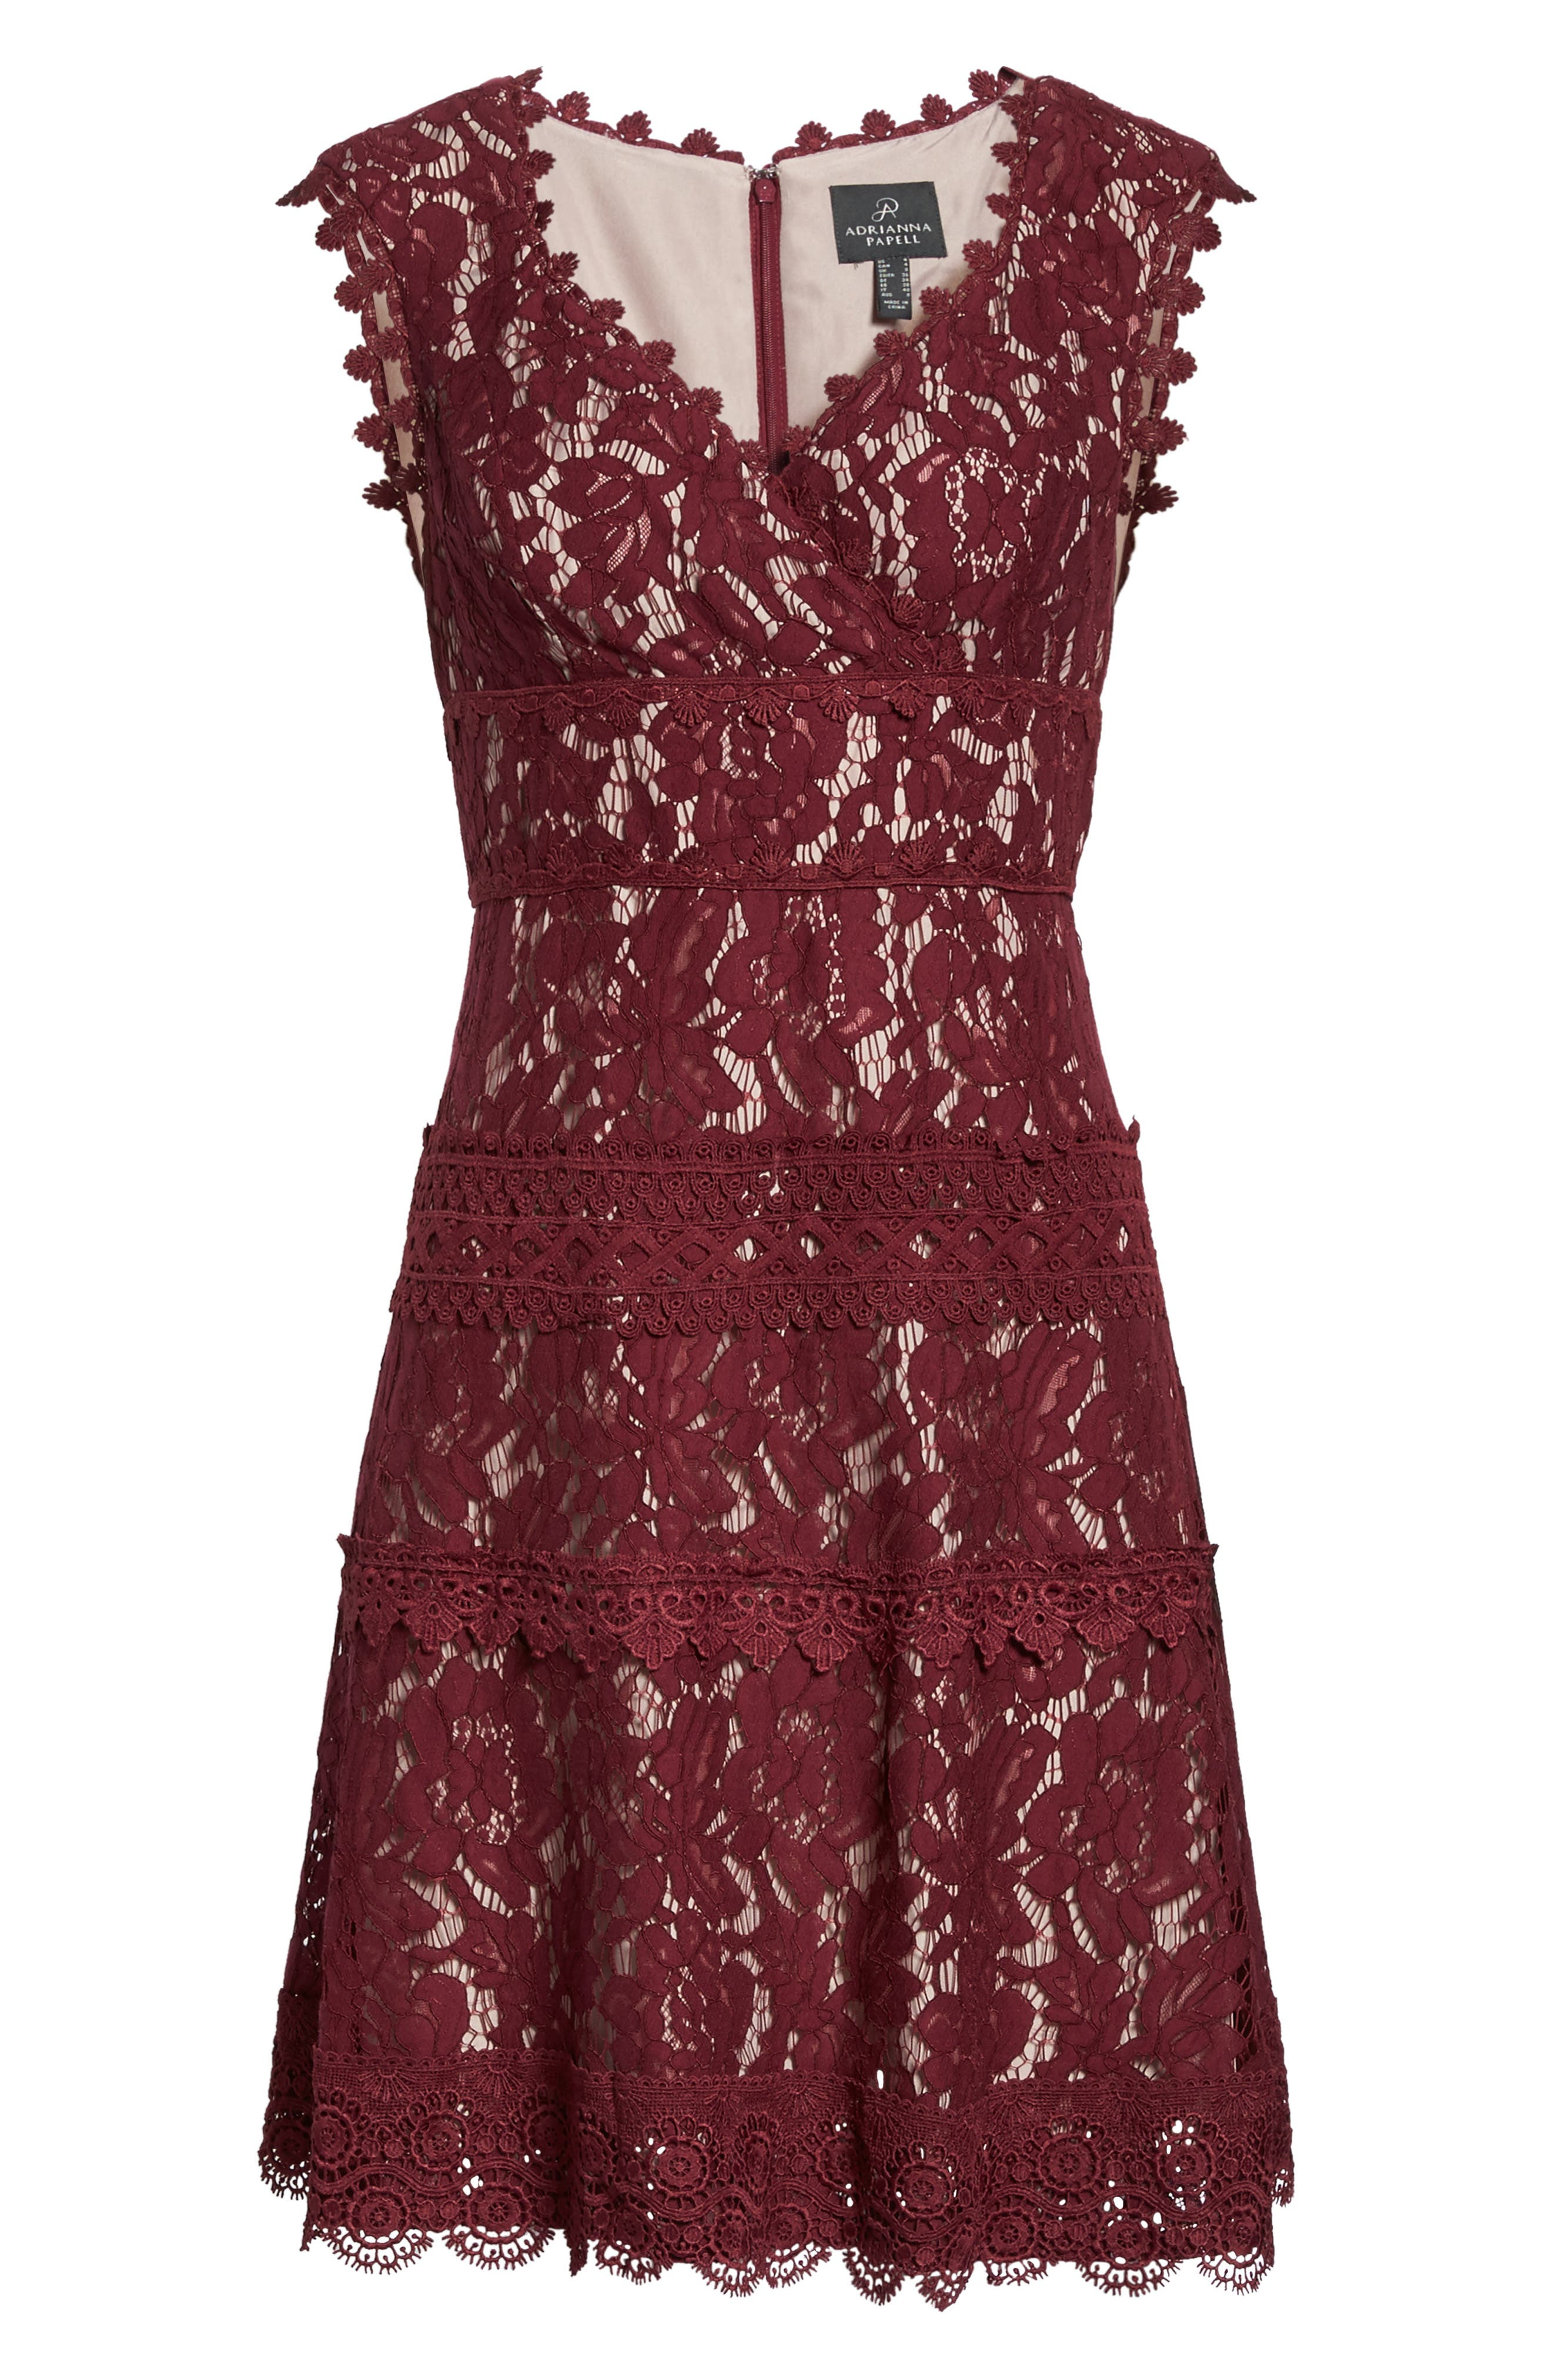 Cynthia Lace Fit & Flare Dress,                             Alternate thumbnail 6, color,                             605